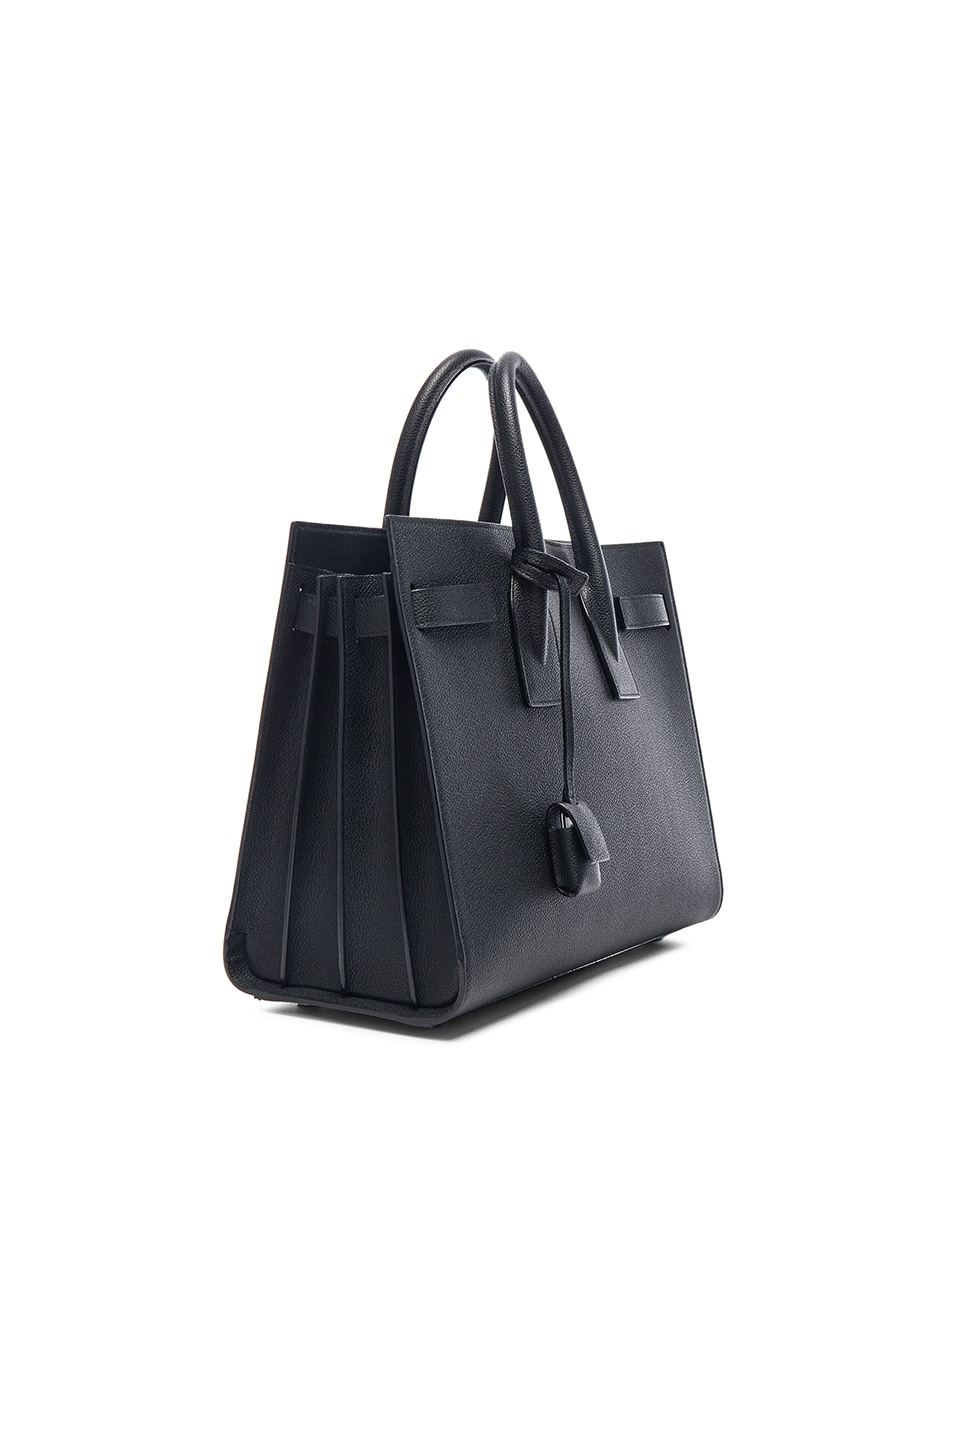 6c3cdf2091e Image 4 of Saint Laurent Small Black Hardware Sac De Jour in Black